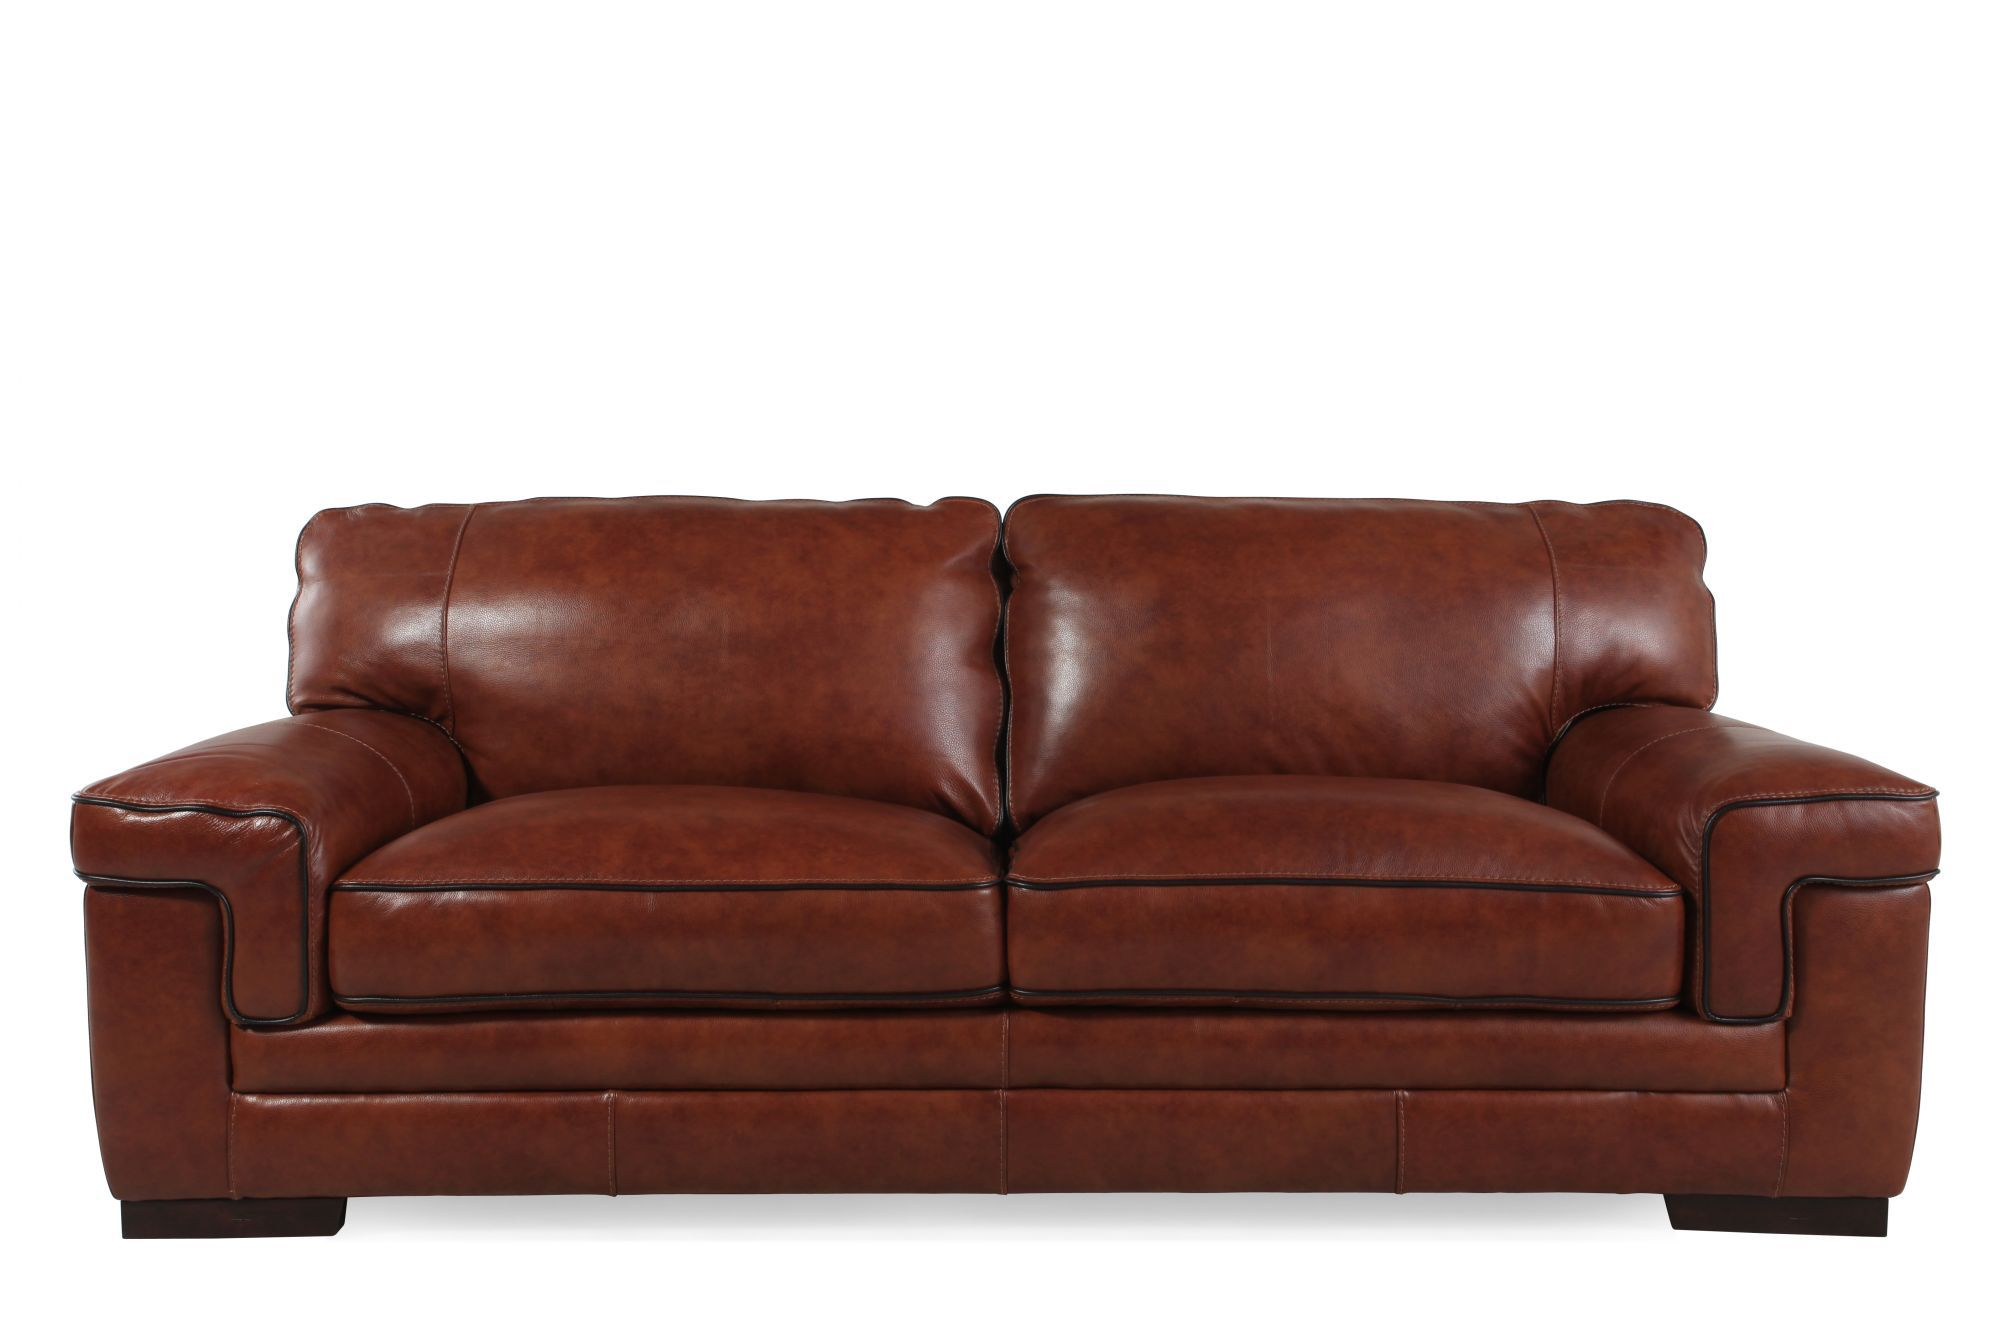 Simon Li Leather Stampede Chestnut Sofa Is This Available In Ny